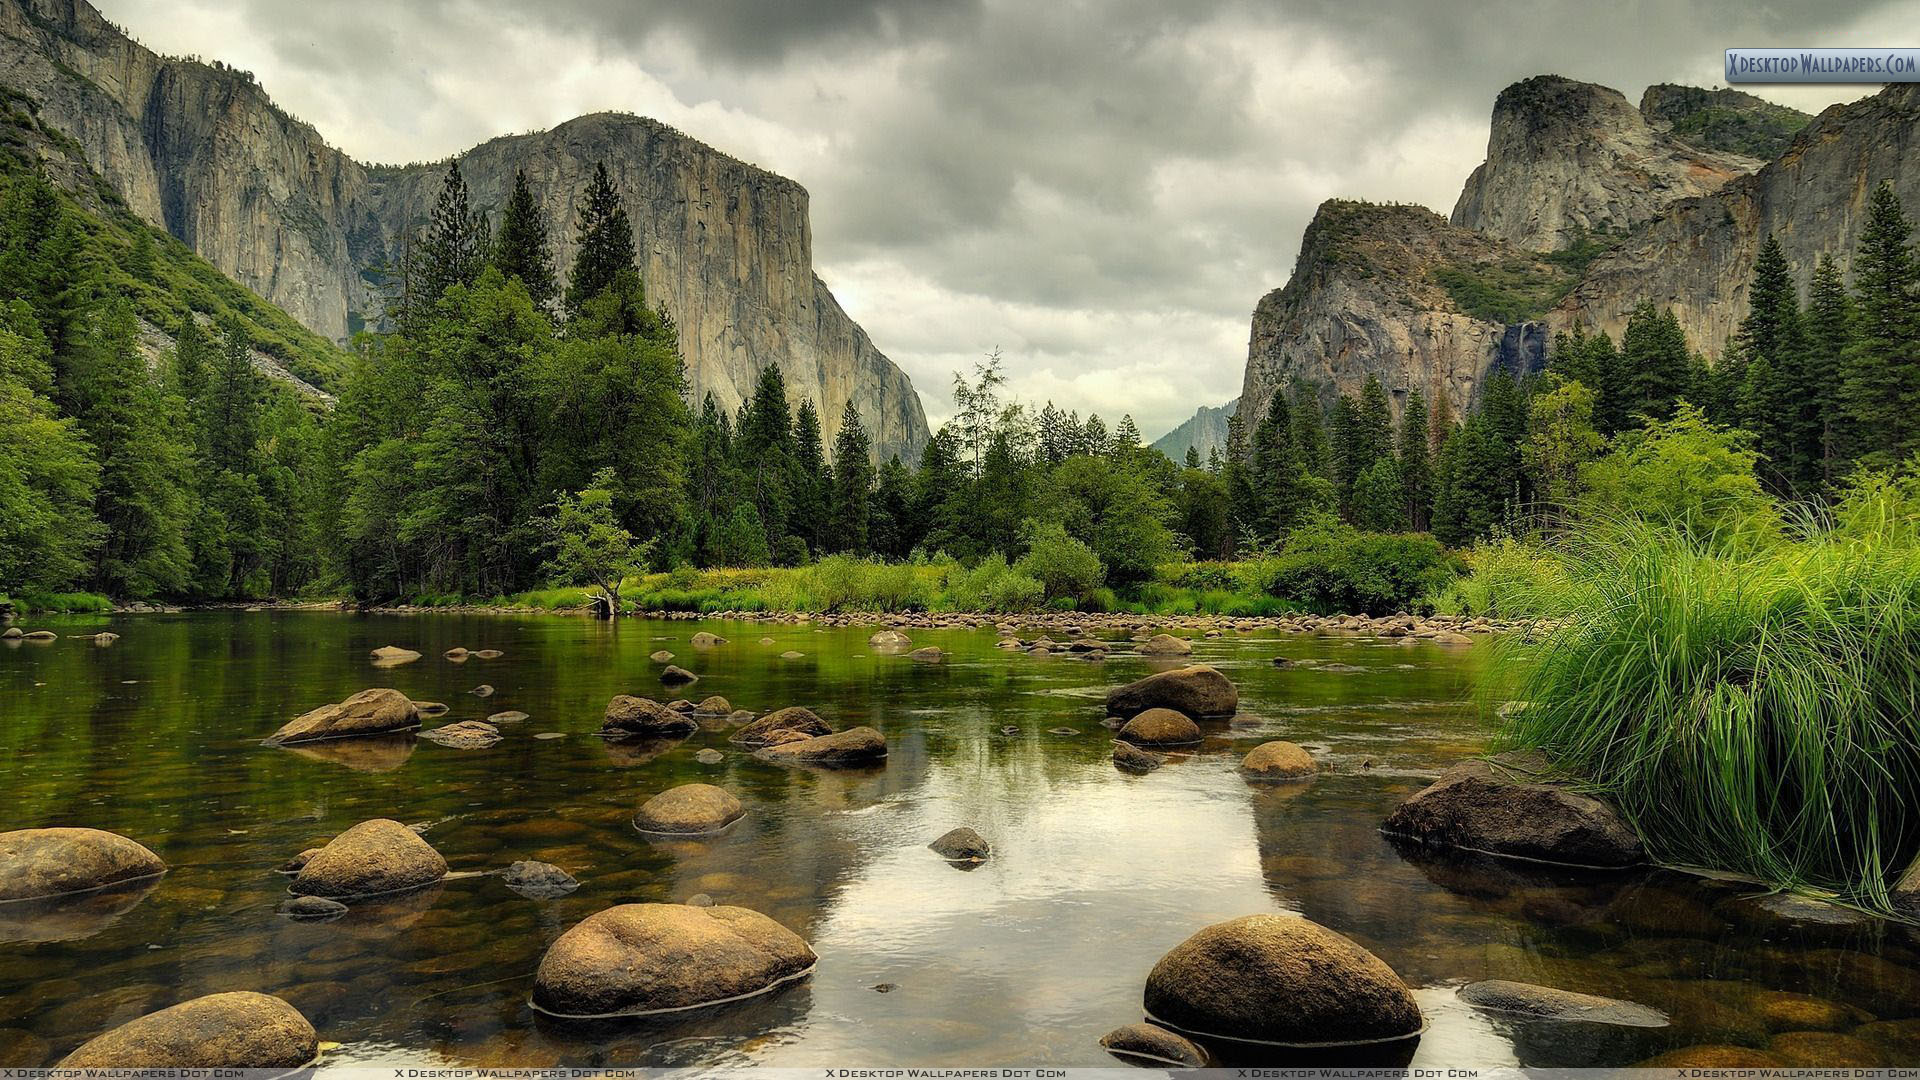 Yosemite National Park Nice Scene Wallpaper 1920x1080